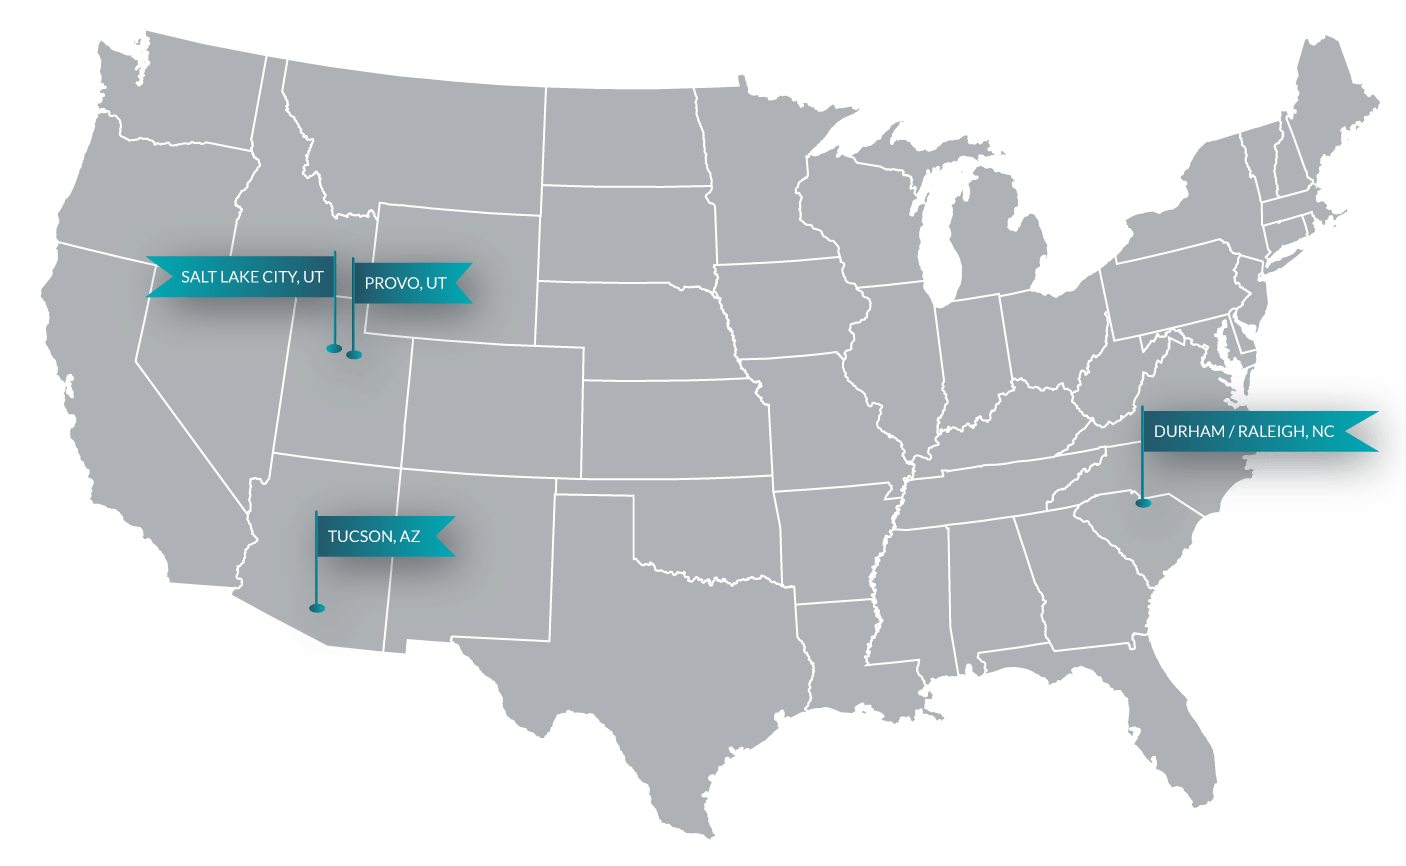 Forbes Article - Ranked: The 10 US Cities Best Positioned To Recover From Coronavirus (And The 10 Worst)